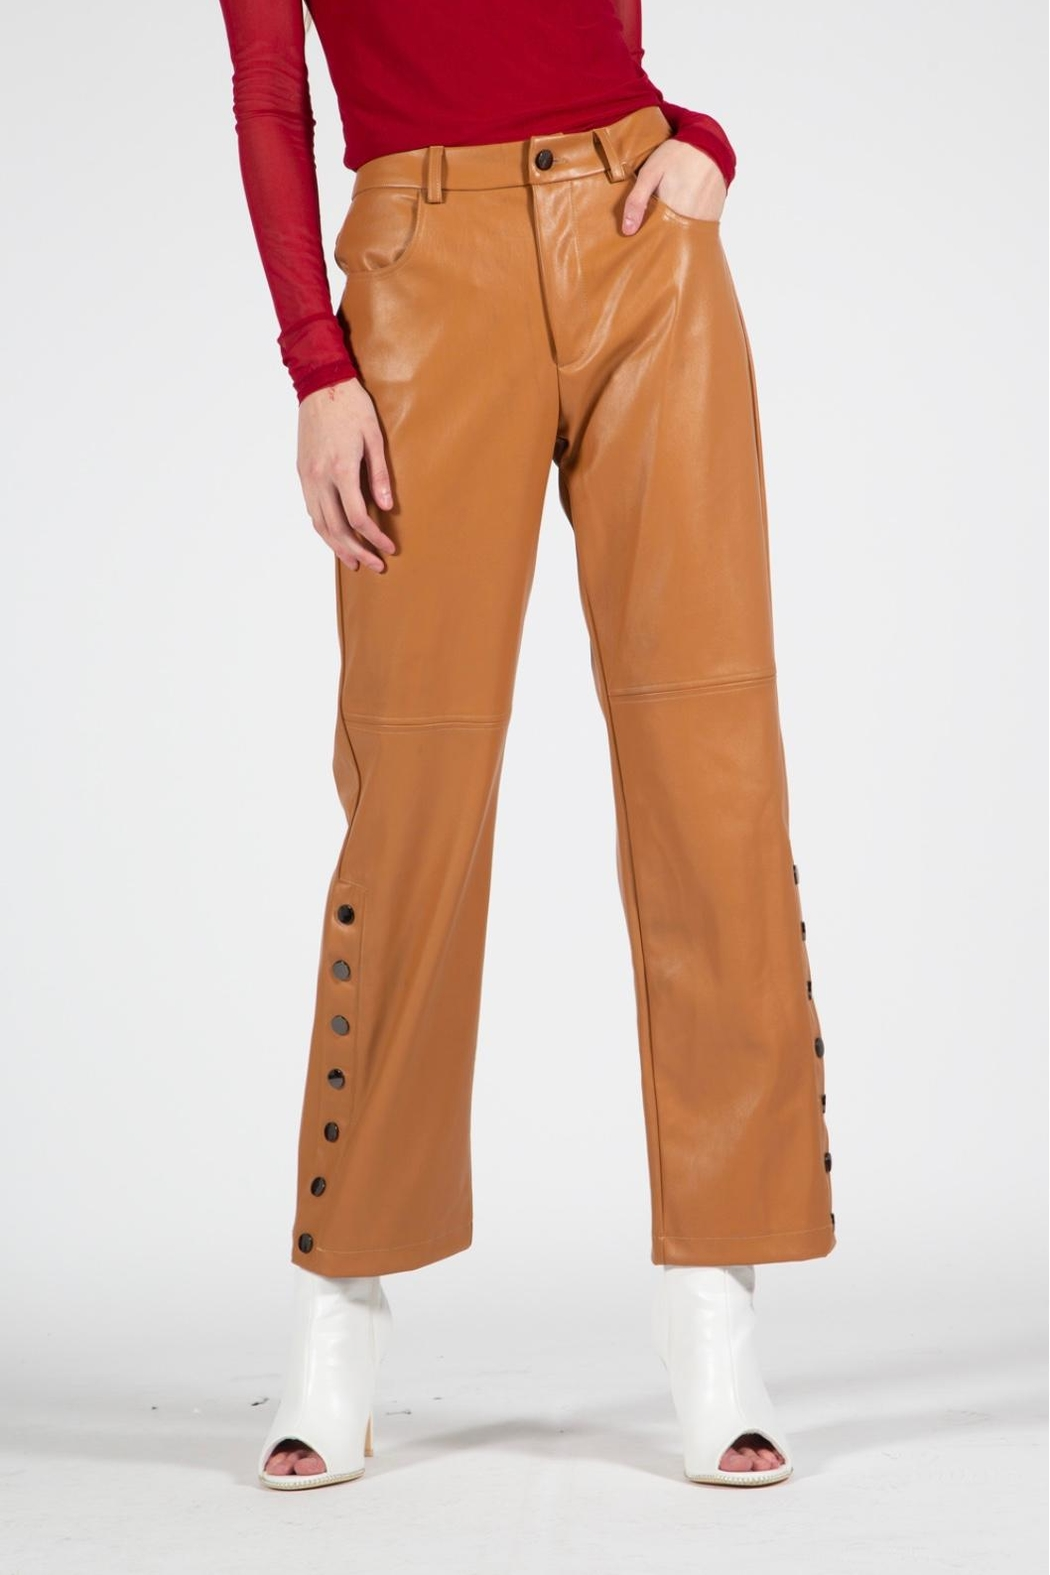 BEULAH STYLE Camel Leather Pants - Side Cropped Image